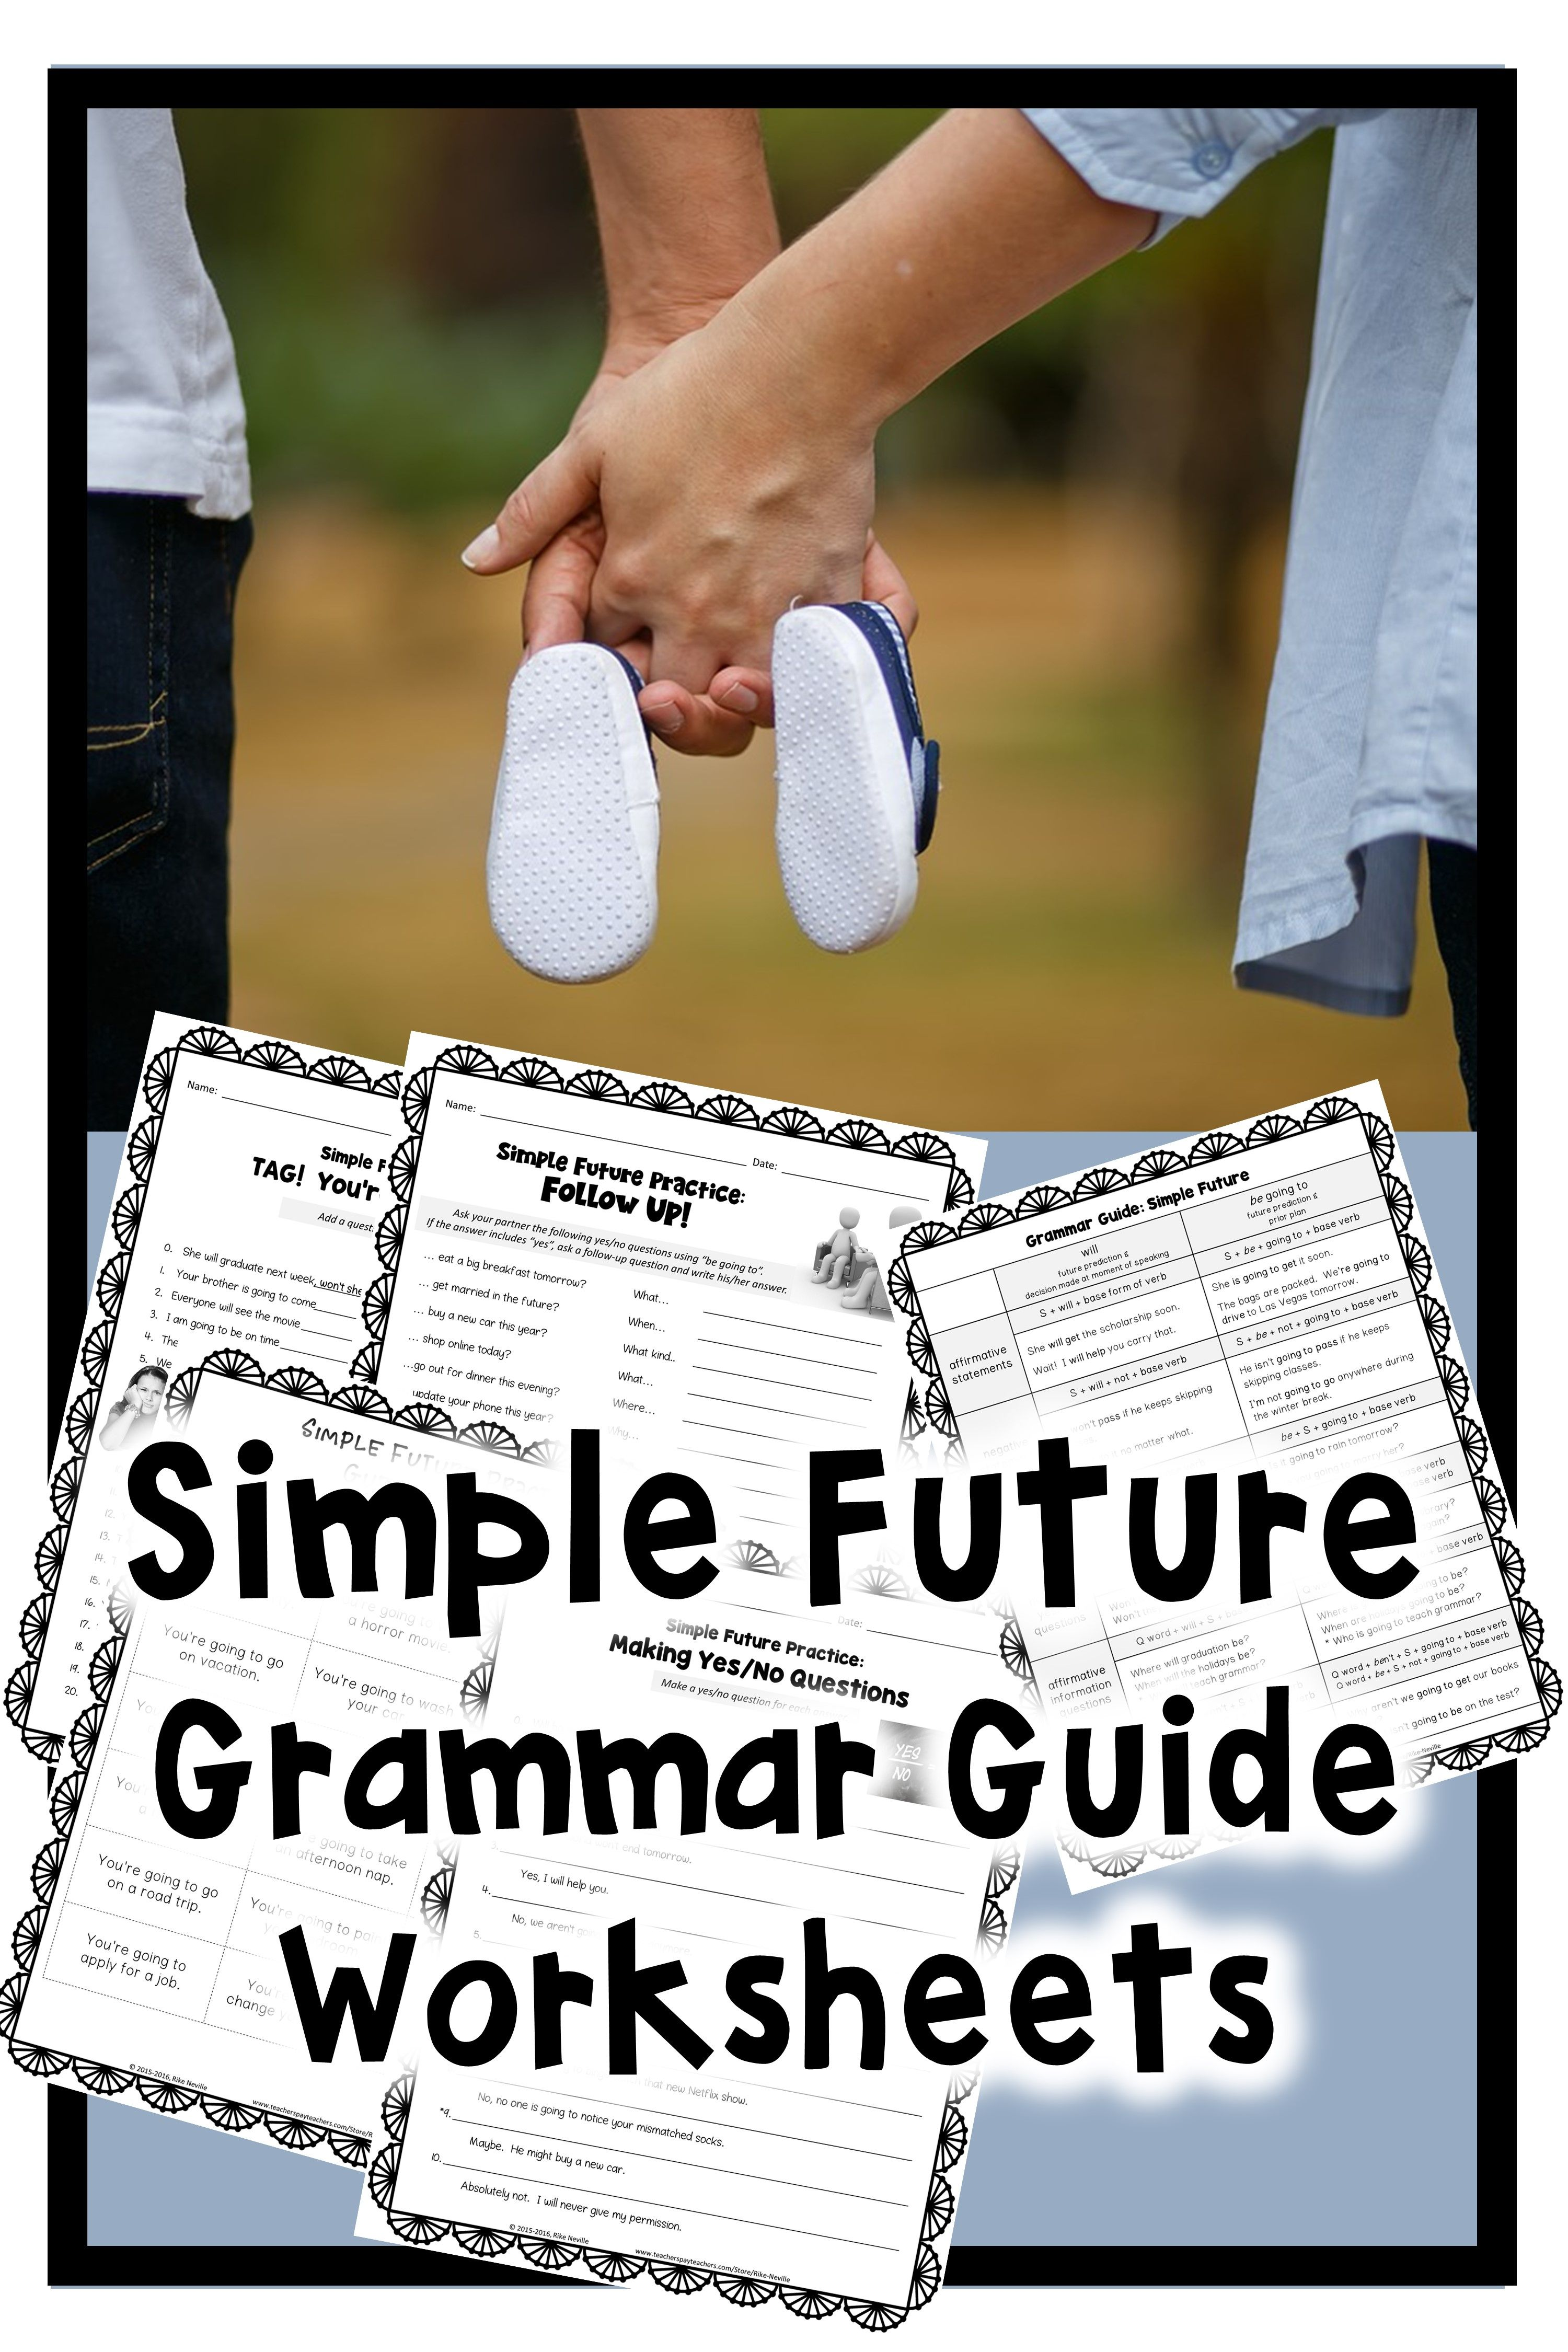 00220dc2f6eb Simple future grammar guide with worksheets for adult ESL students or  secondary students